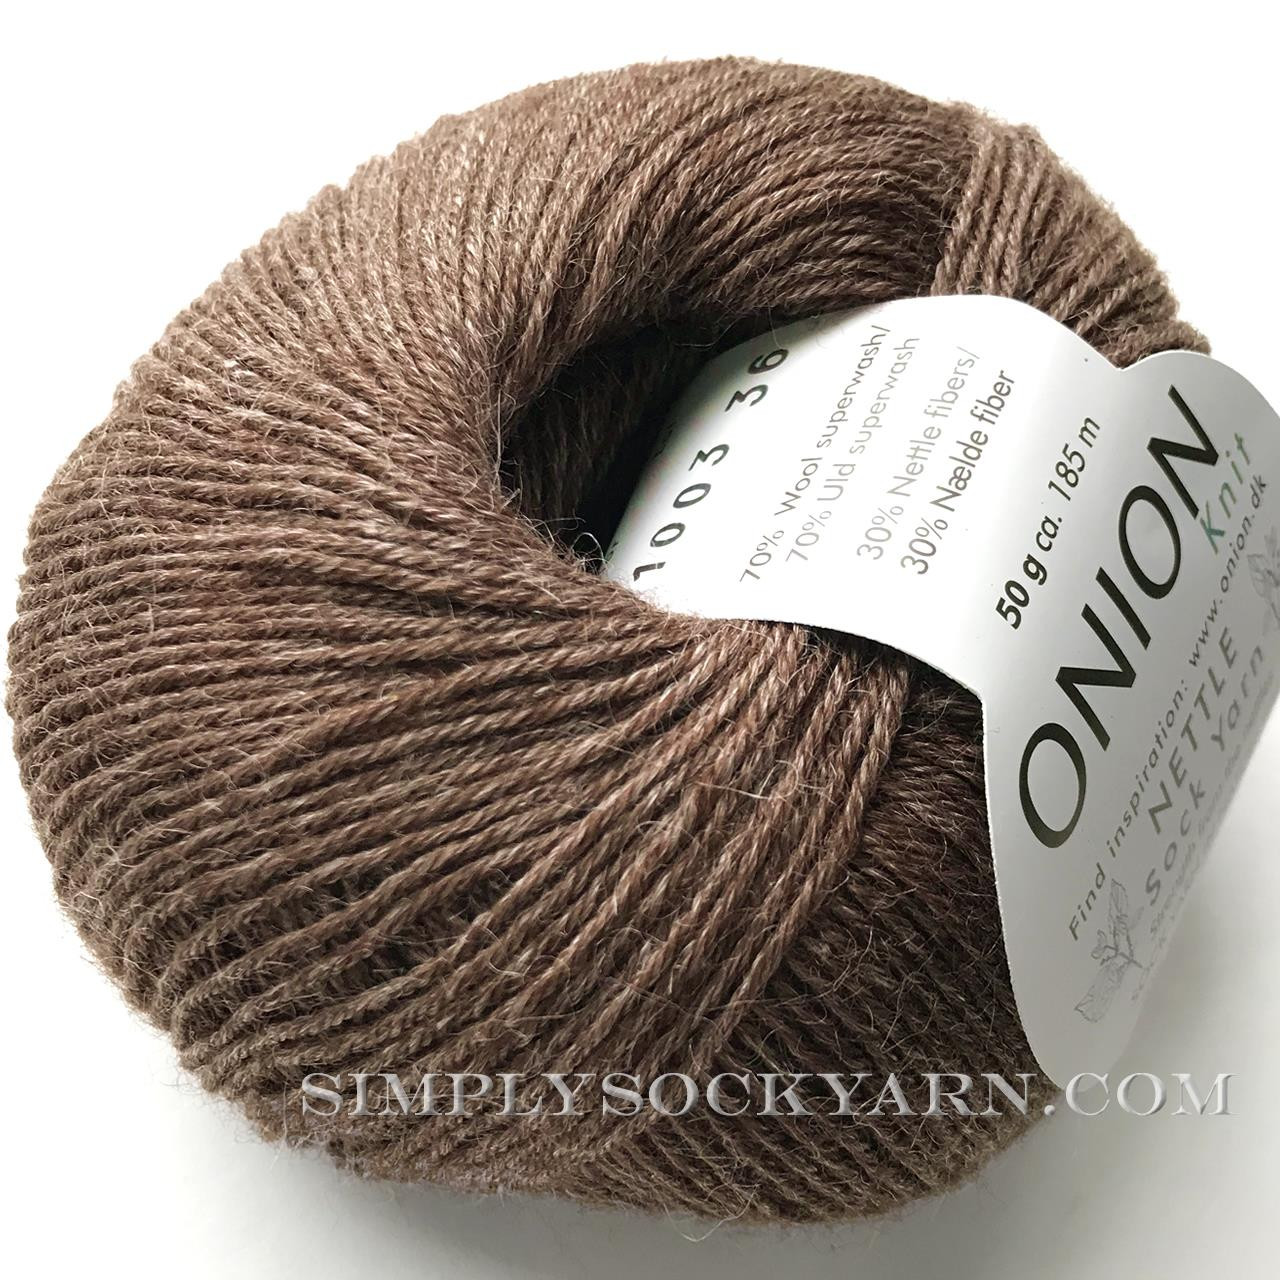 OY Nettle Sock 1003 Brown -